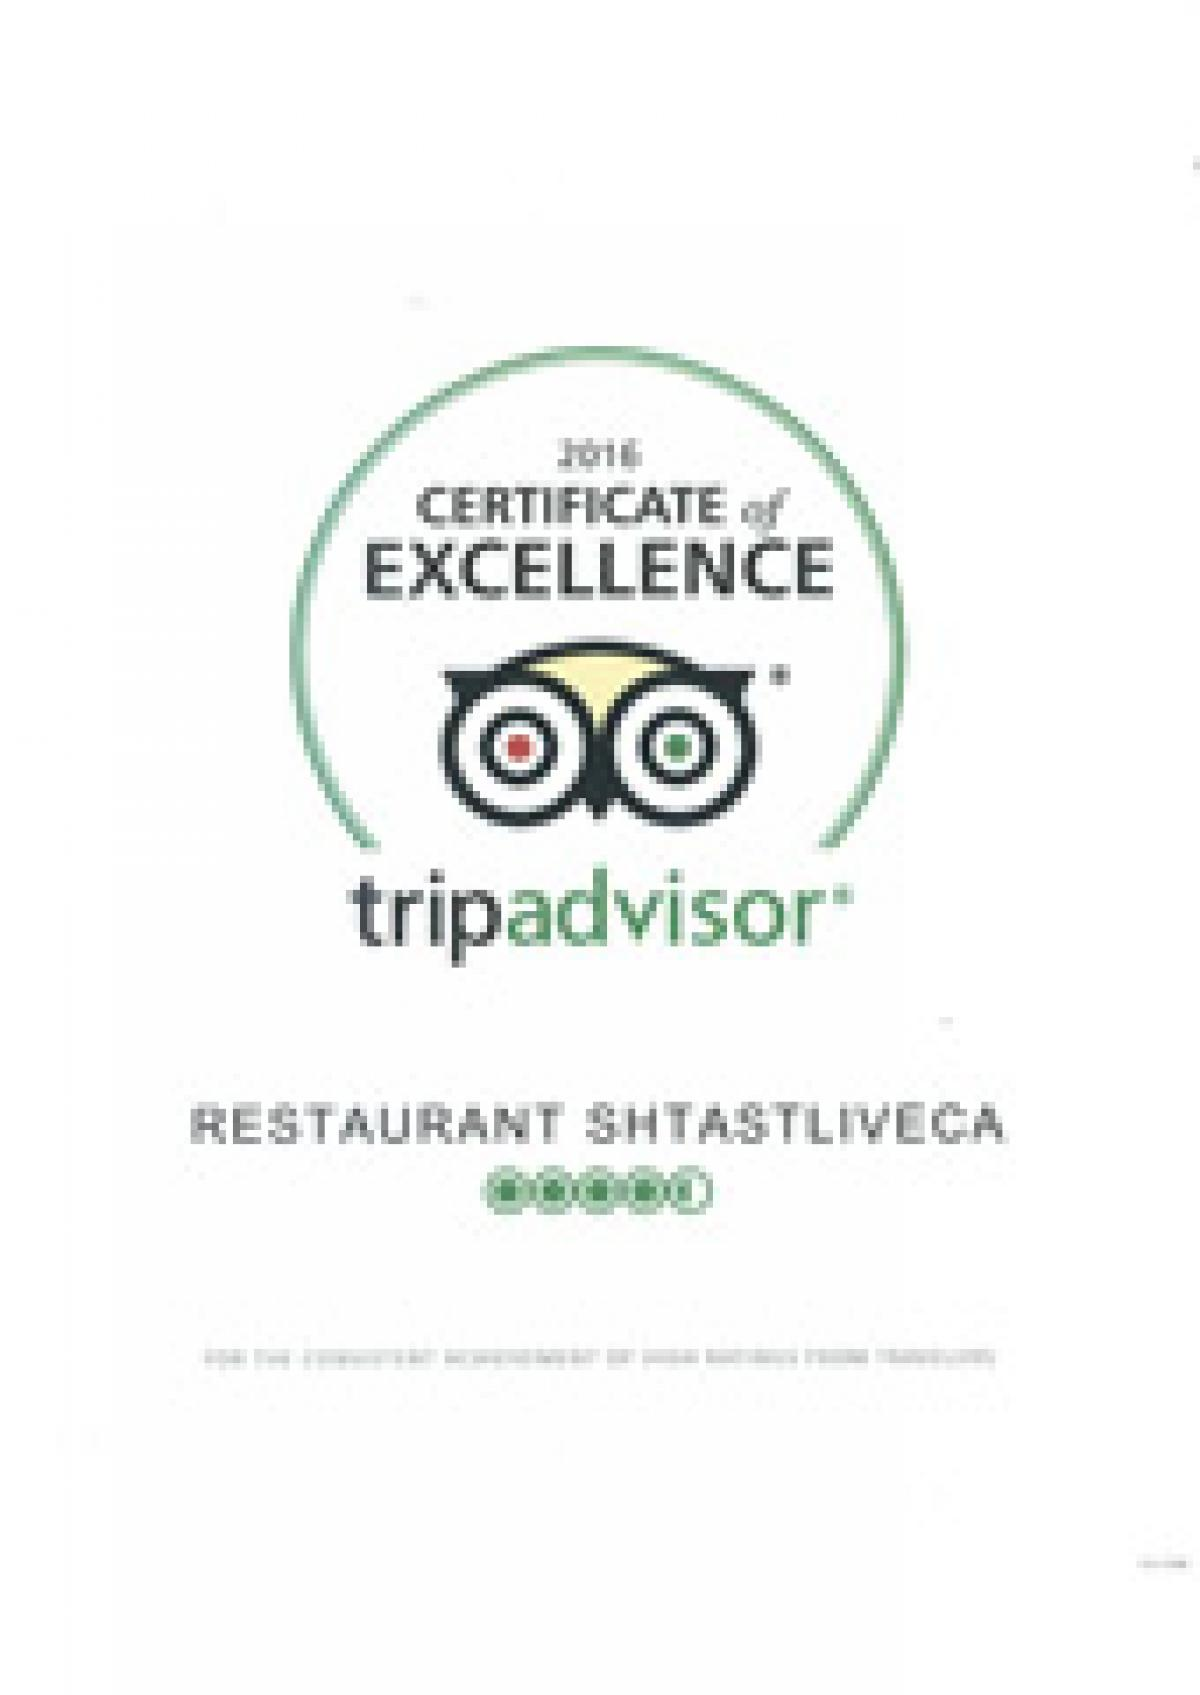 Certificate of Excellence - Tripadvisor 2016